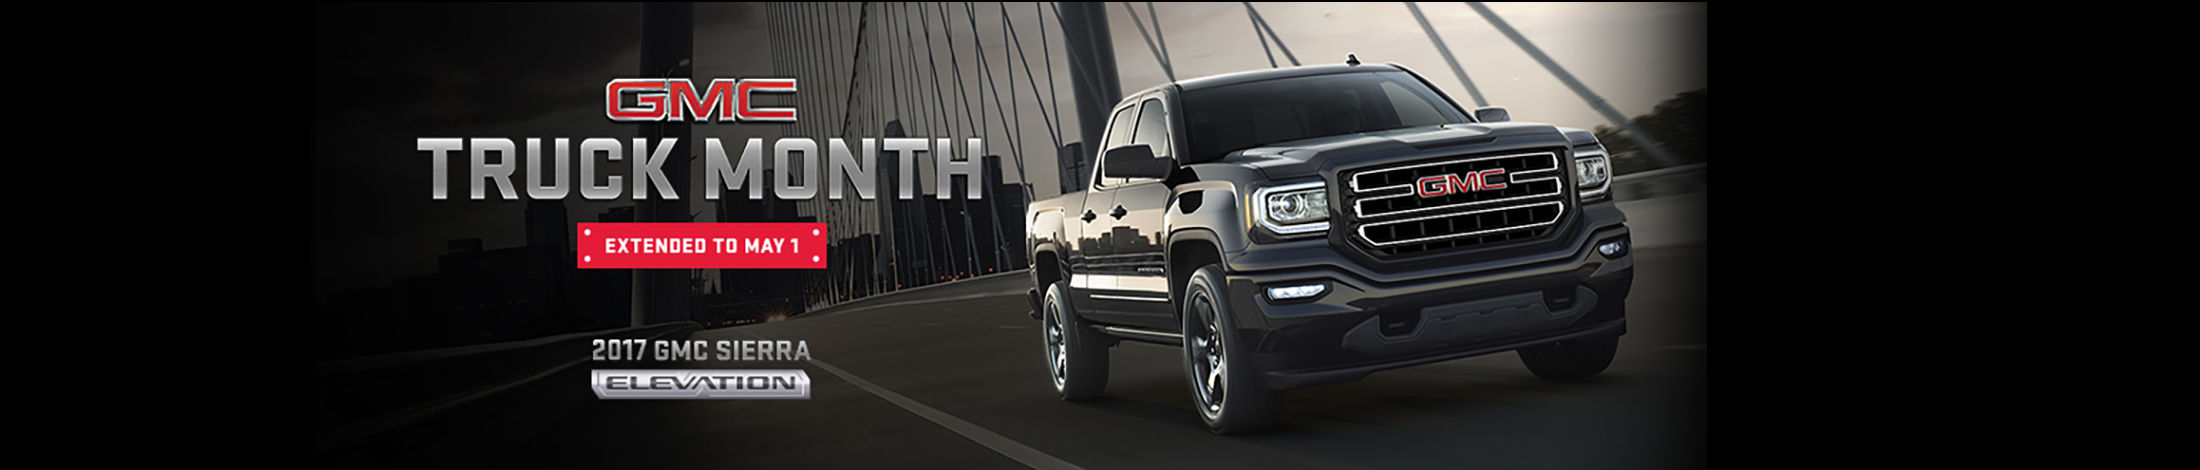 Header of the month GMC